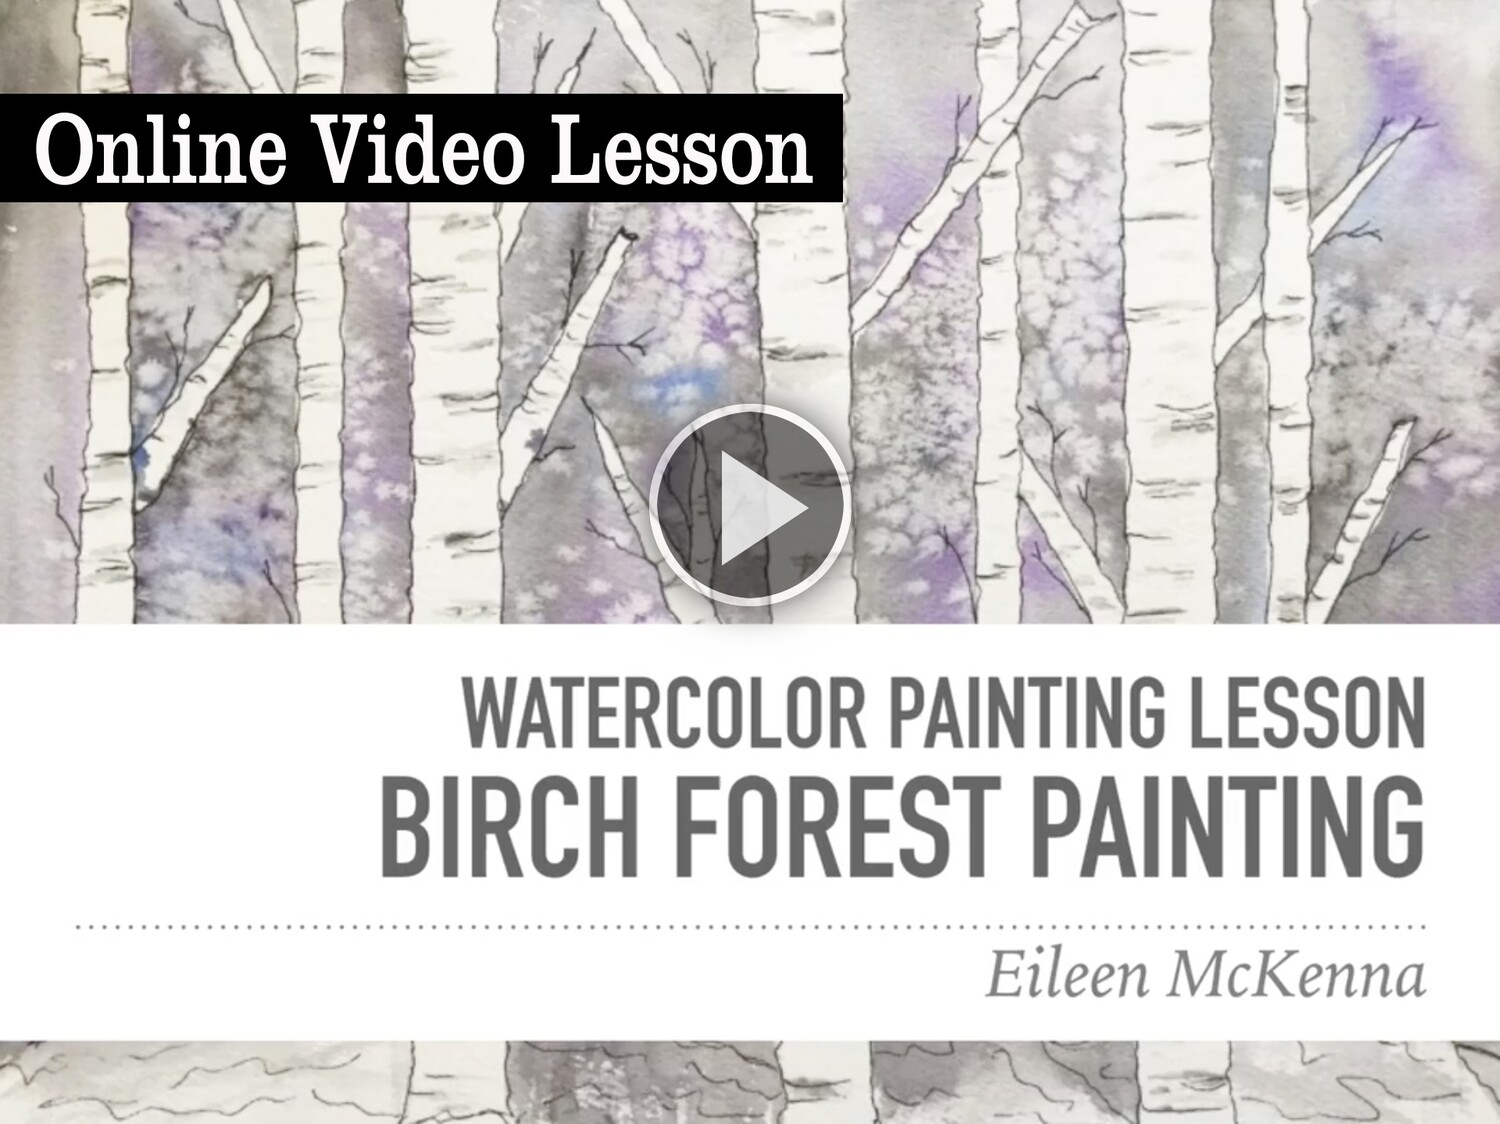 Birch Forest Watercolor Online Video Painting Lesson